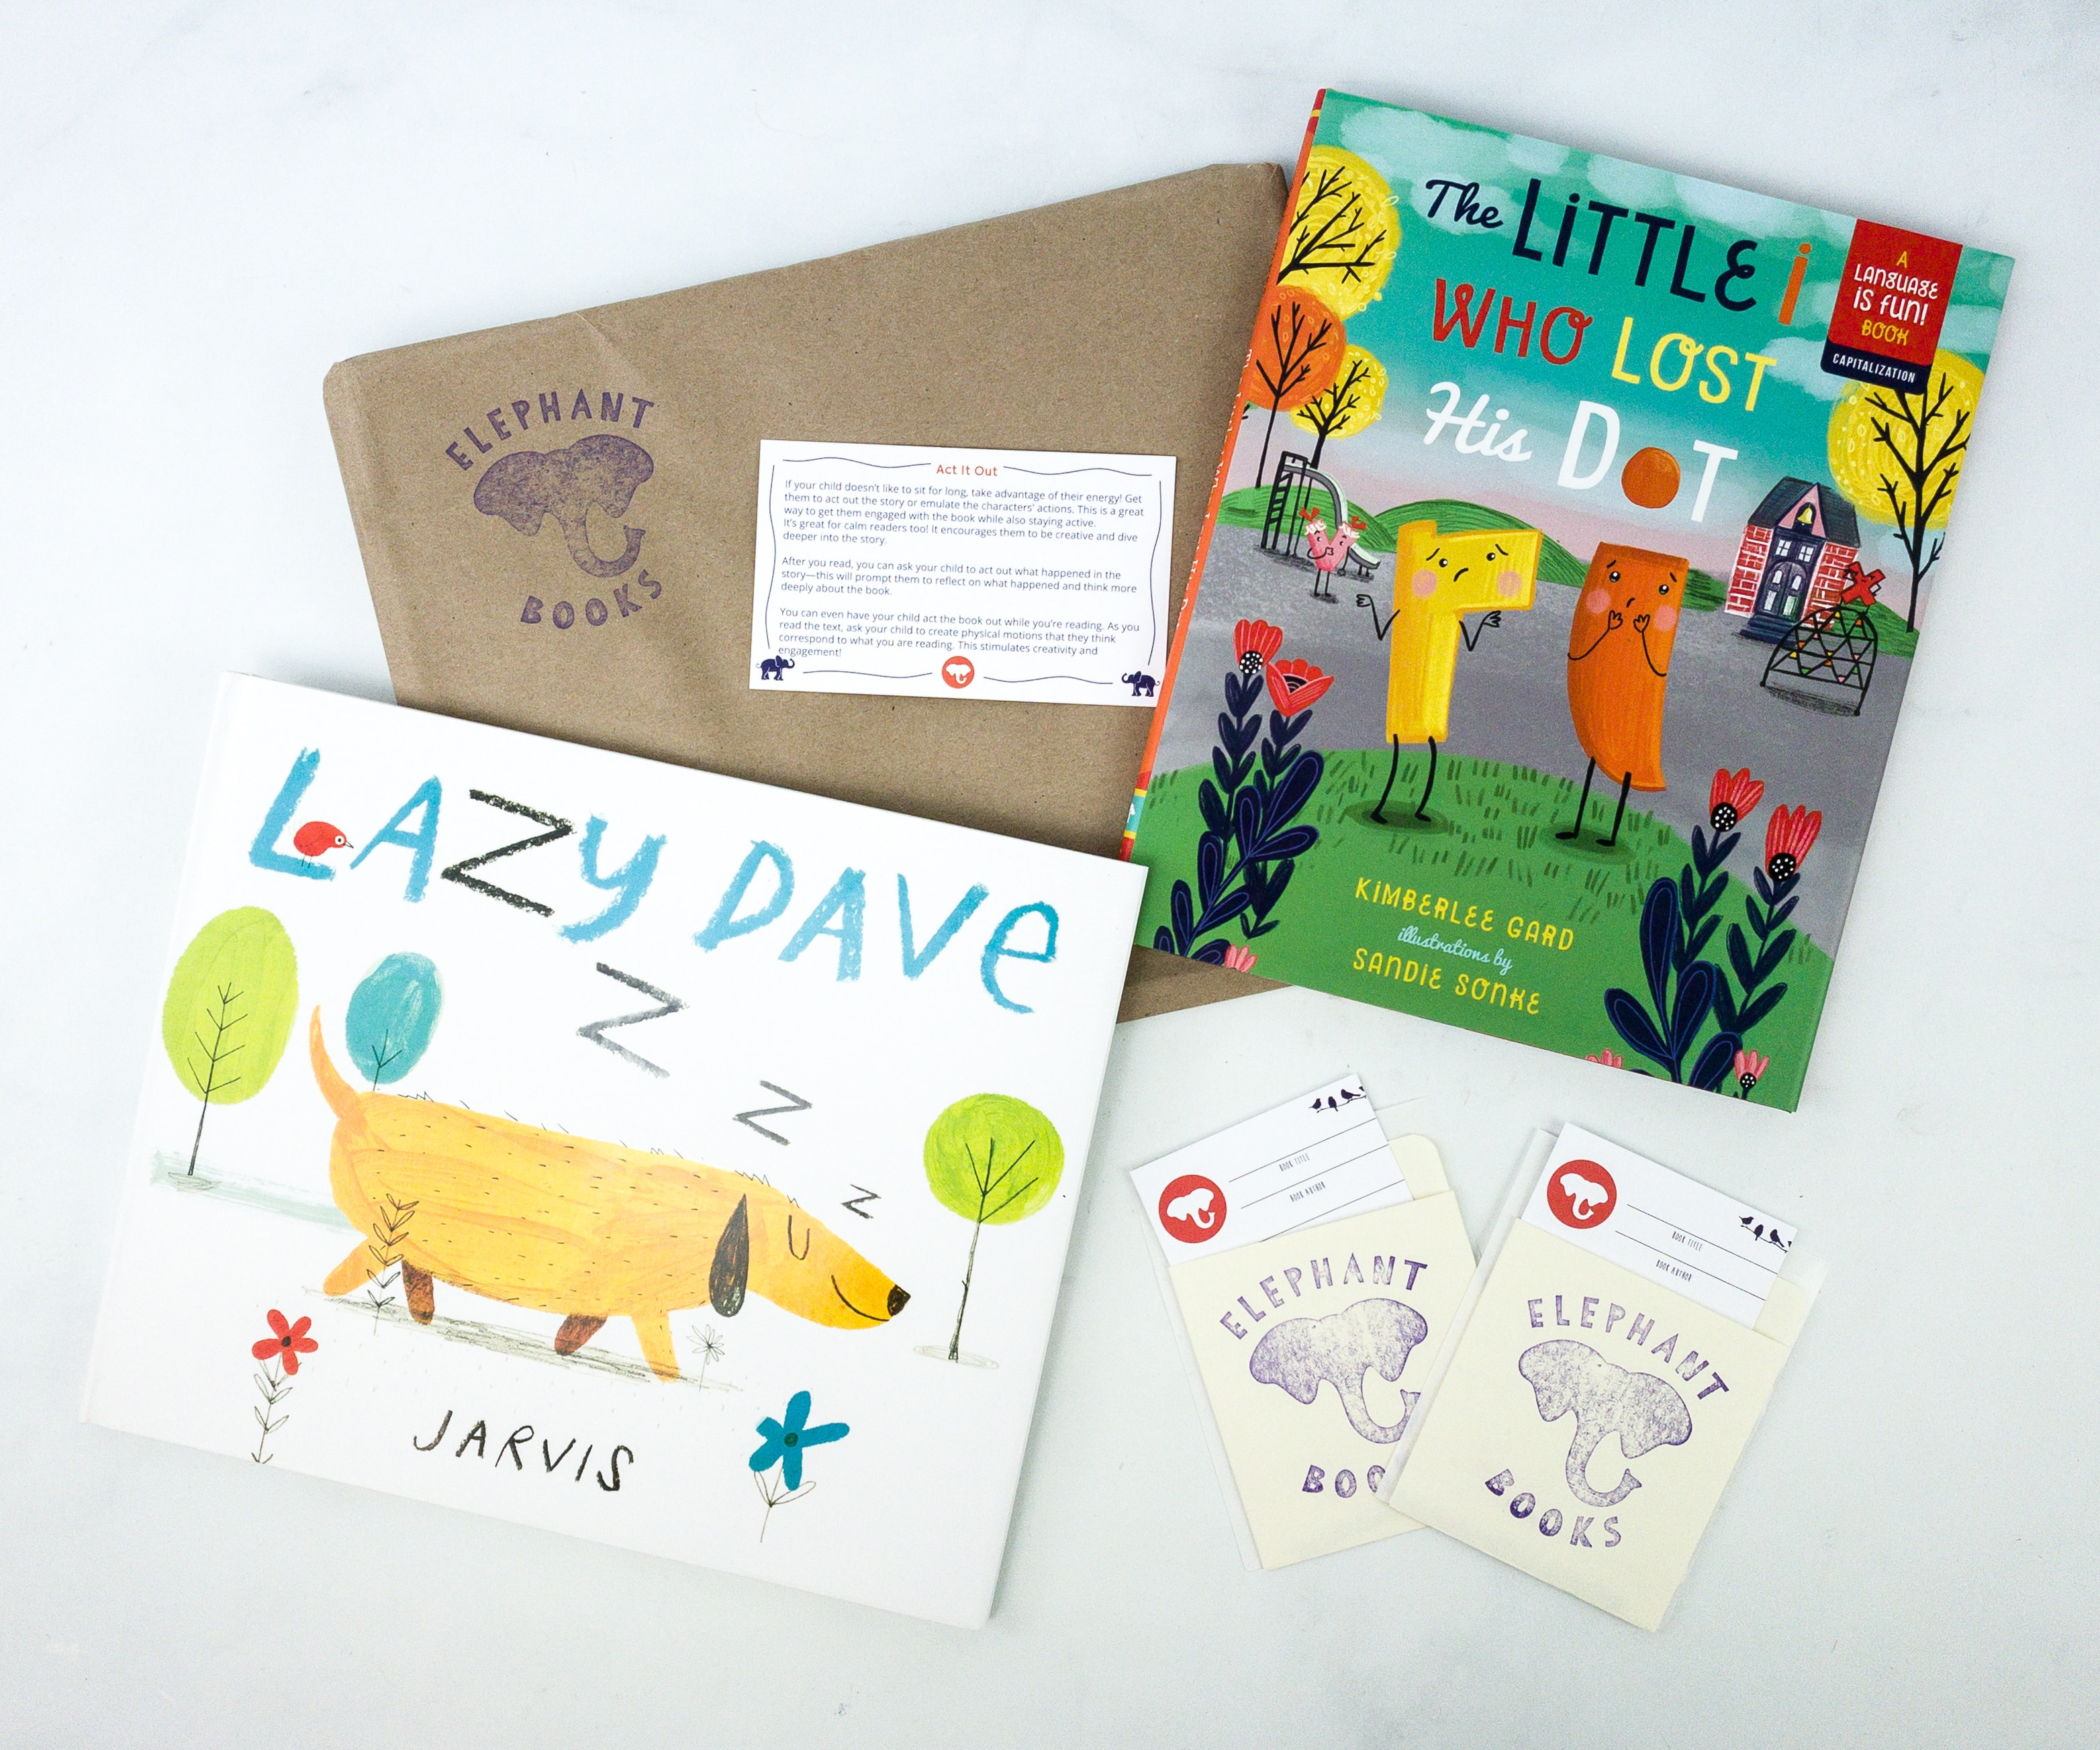 Elephant Books October 2019 Subscription Box Reviews – PICTURE BOOKS